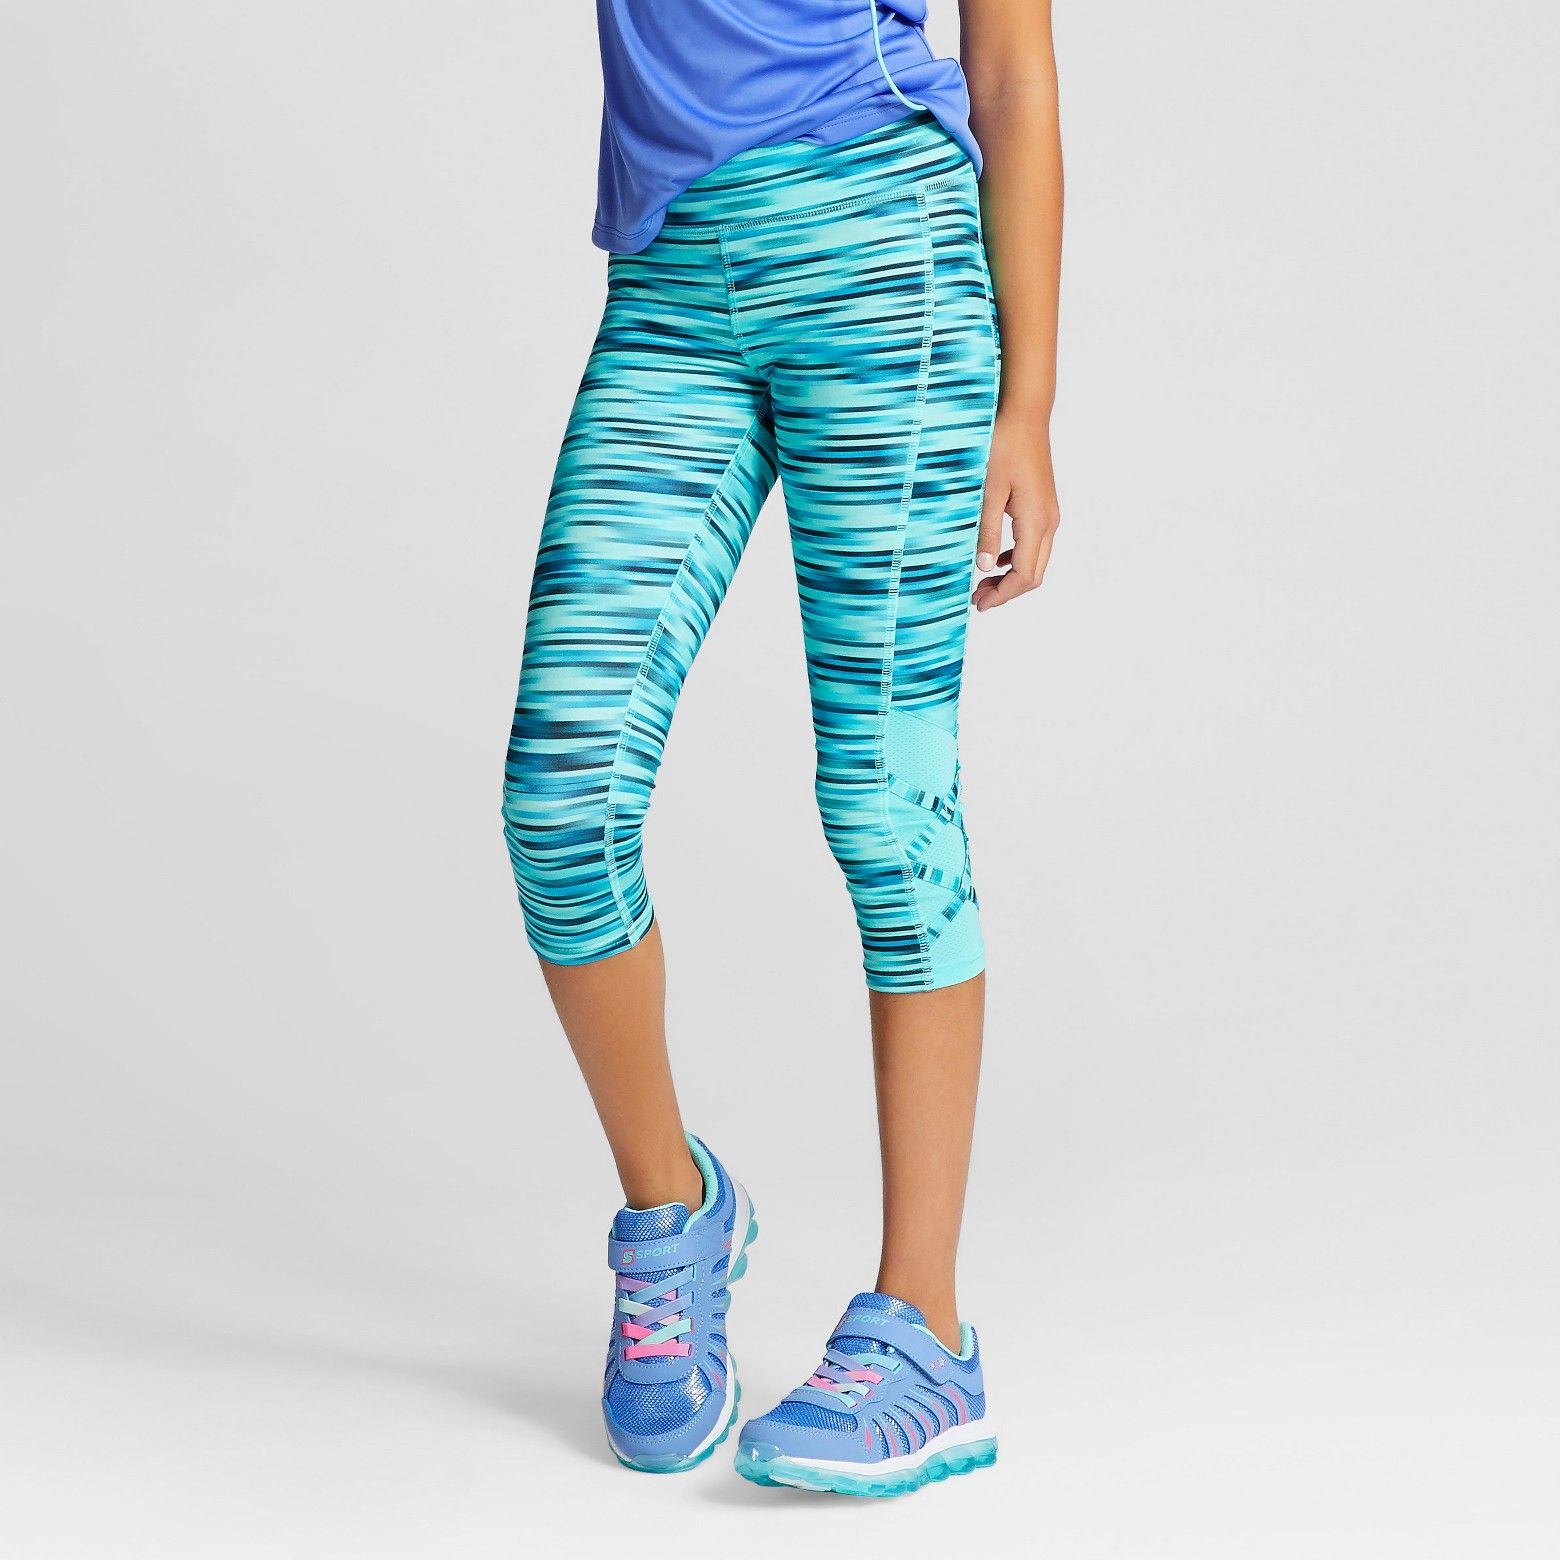 2b9a7012a777e The Girls' Fashion Performance Yoga Capri from C9 Champion® keeps you  focused with stretch fabric that moves with you and wicks to help keep you  cool.